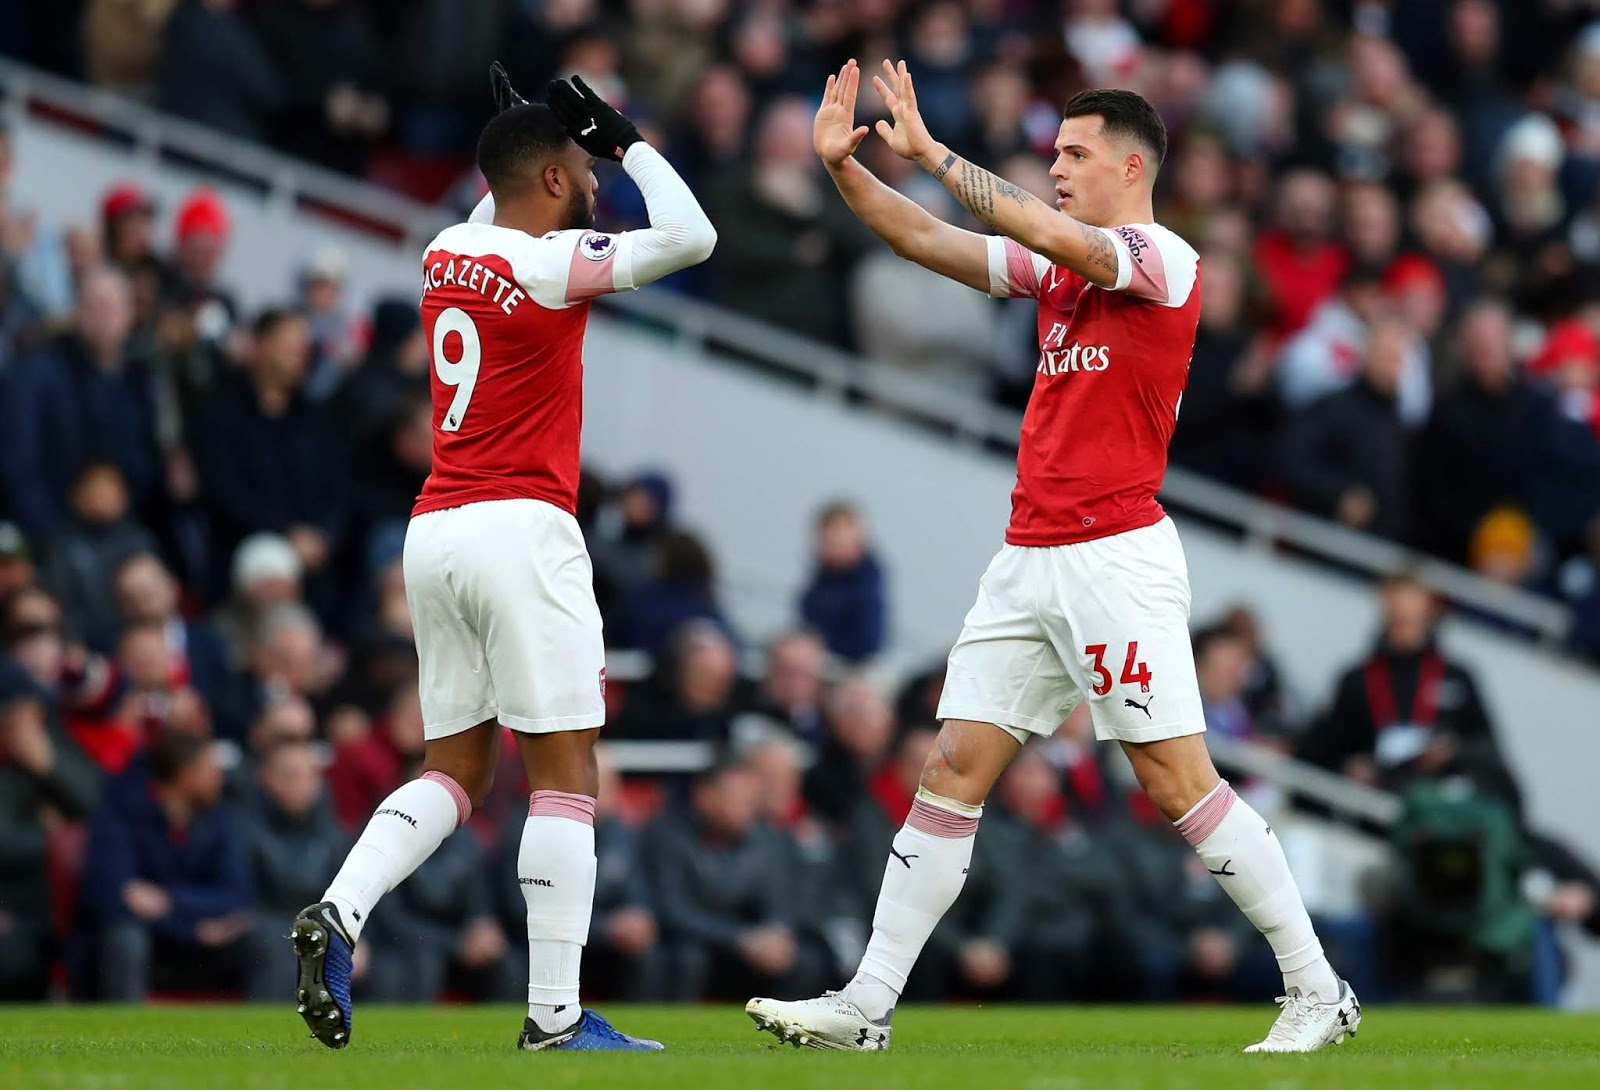 Highlight Arsenal 2-0 Manchester United, 10 Maret 2019